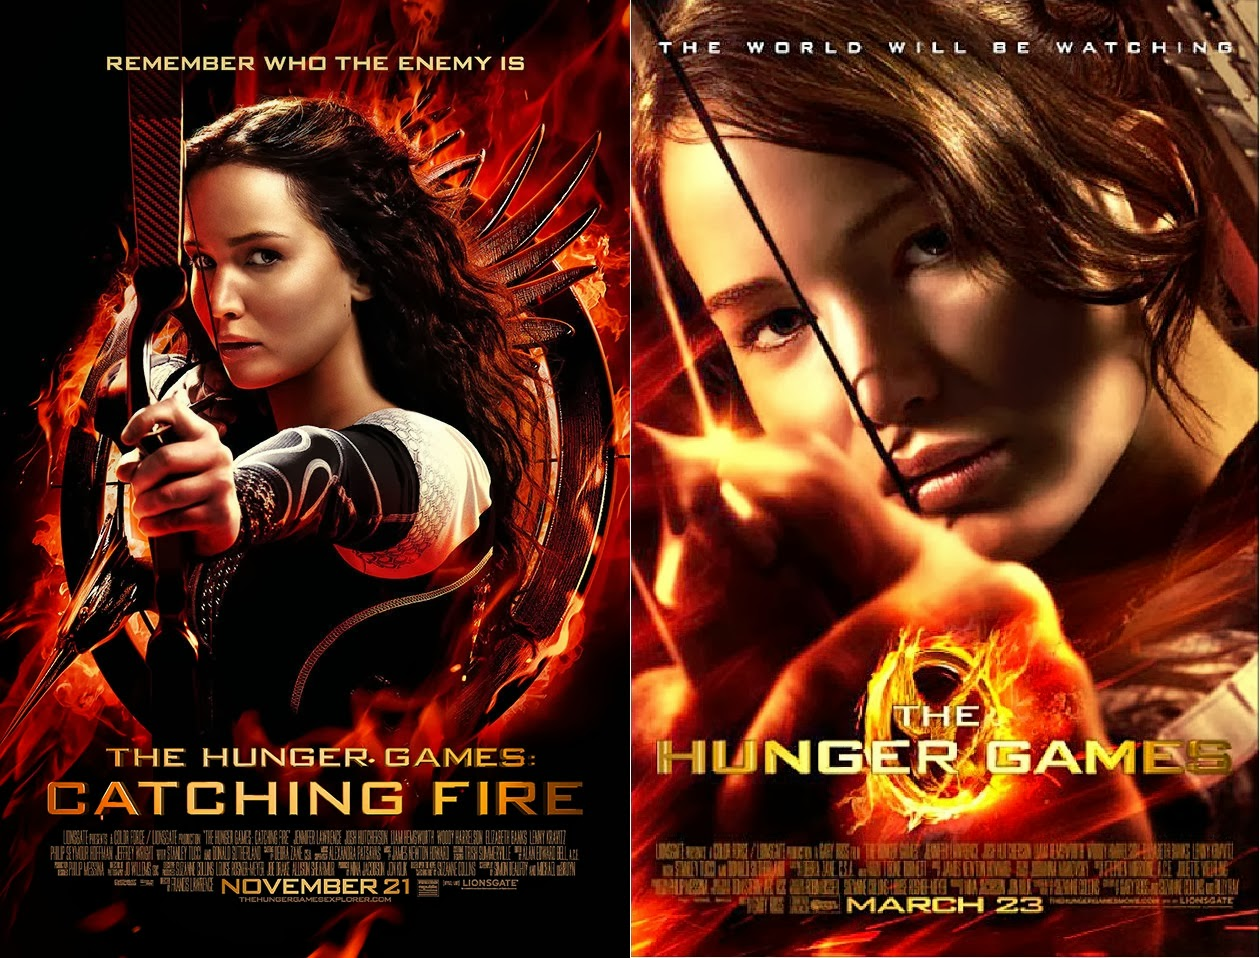 Catching Fire Dvd Cover Catching fire has now earned